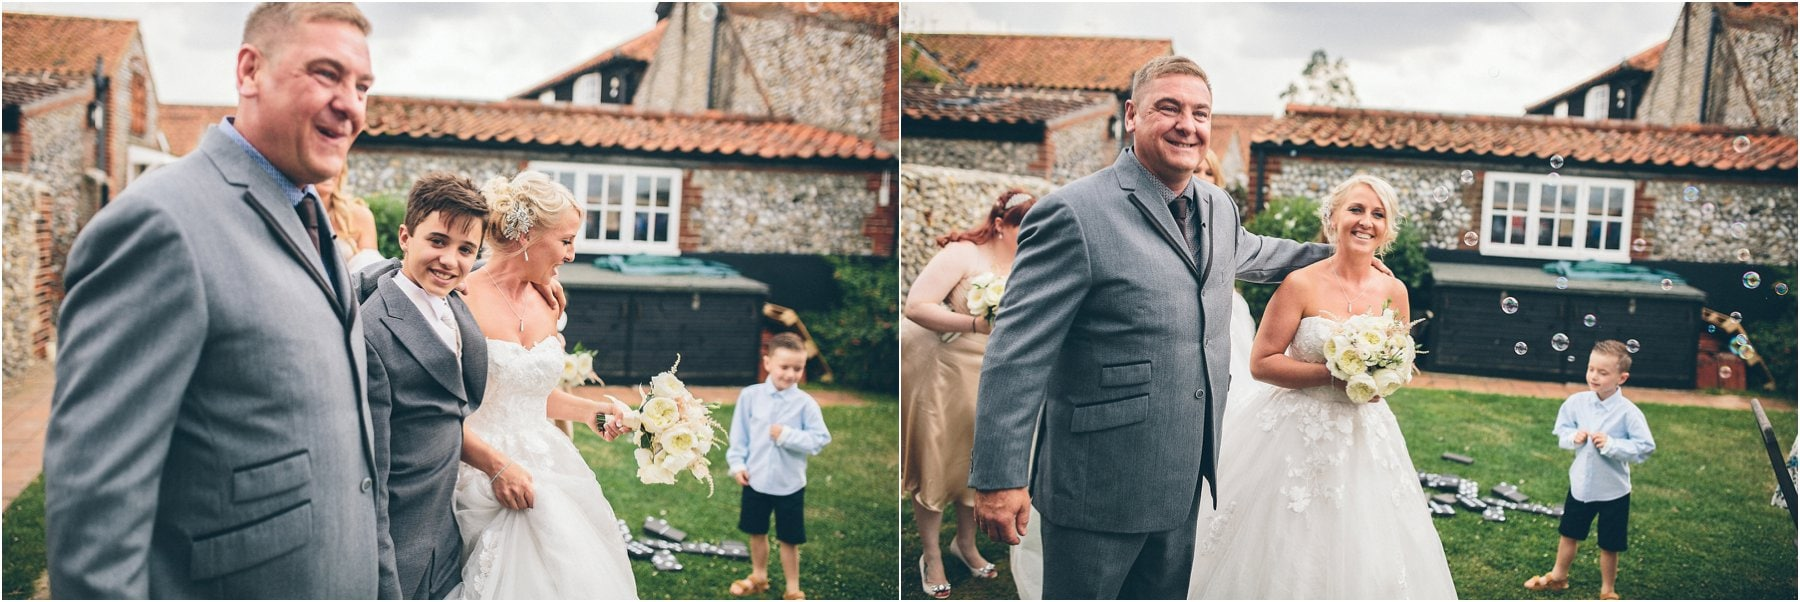 Cley_Windmill_Wedding_Photography_0108